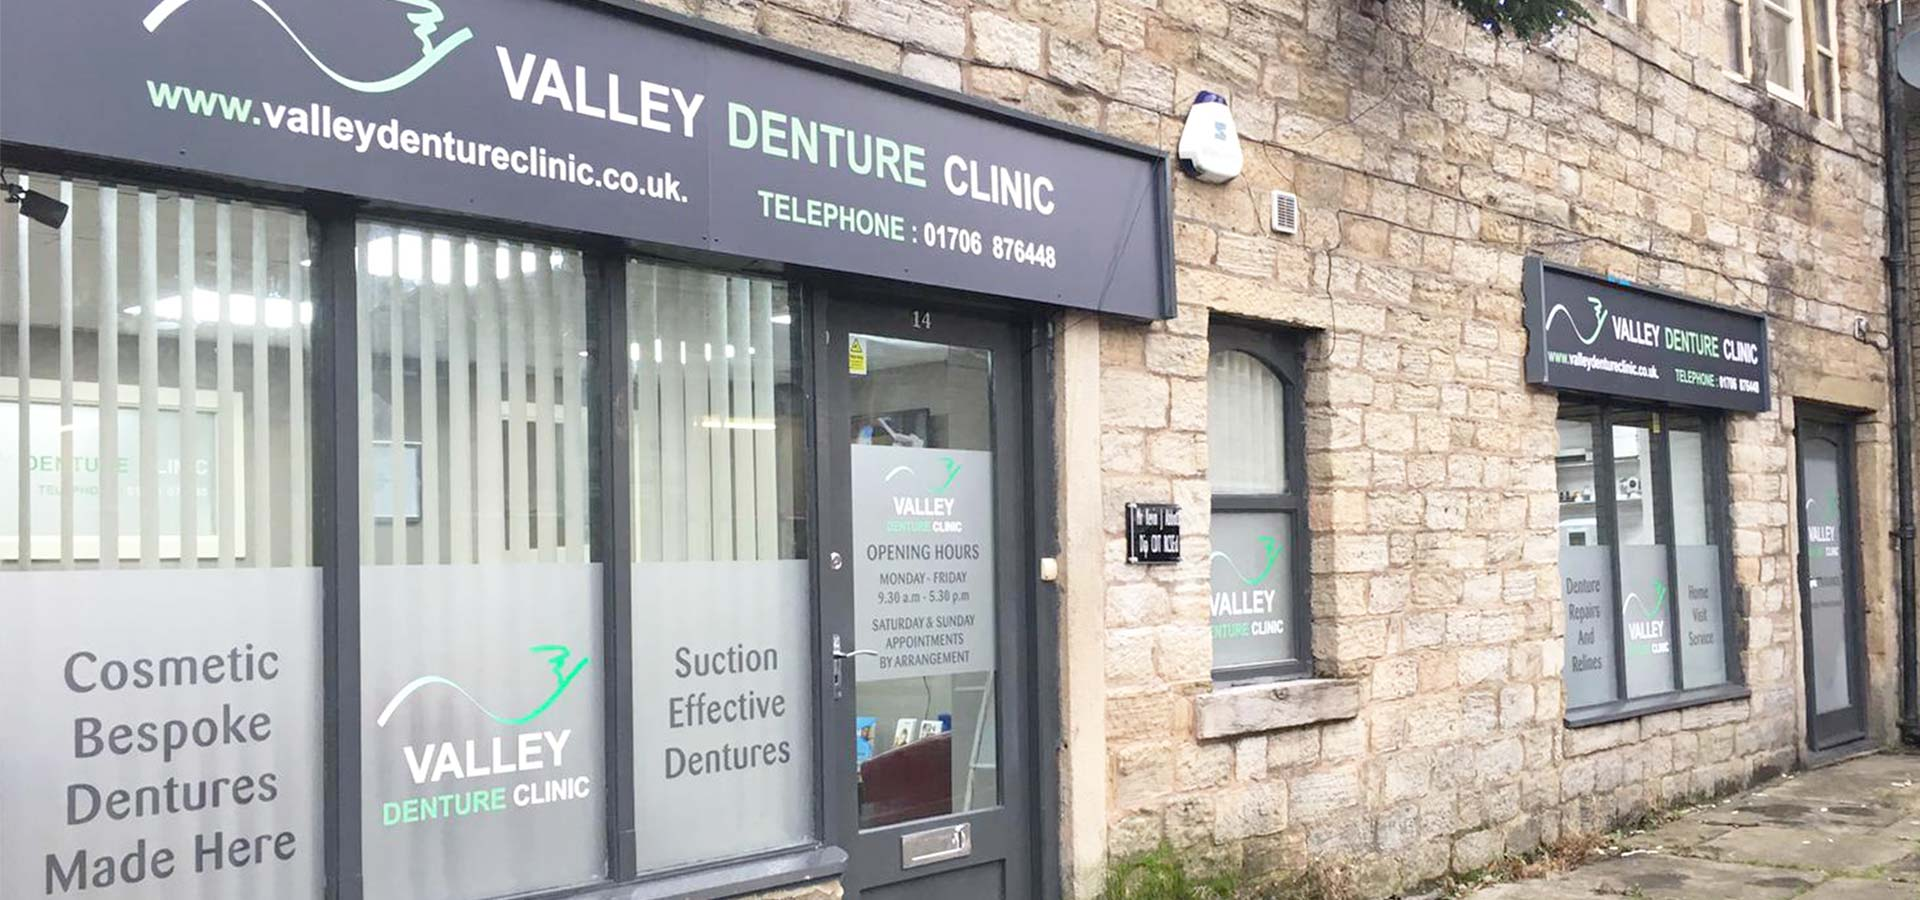 Valley Denture Clinic Outside